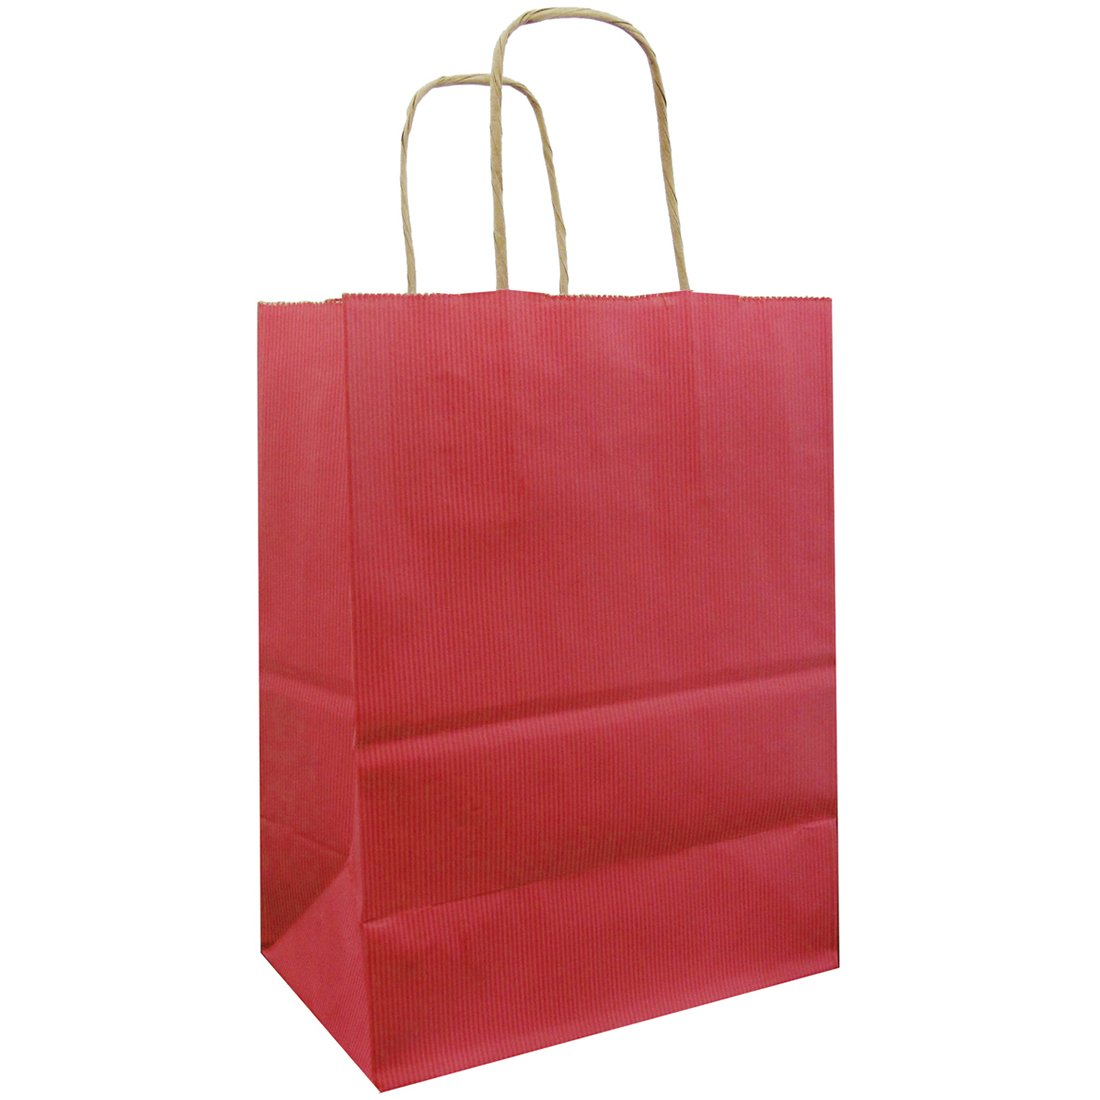 Jillson & Roberts Medium Kraft Bags, Red